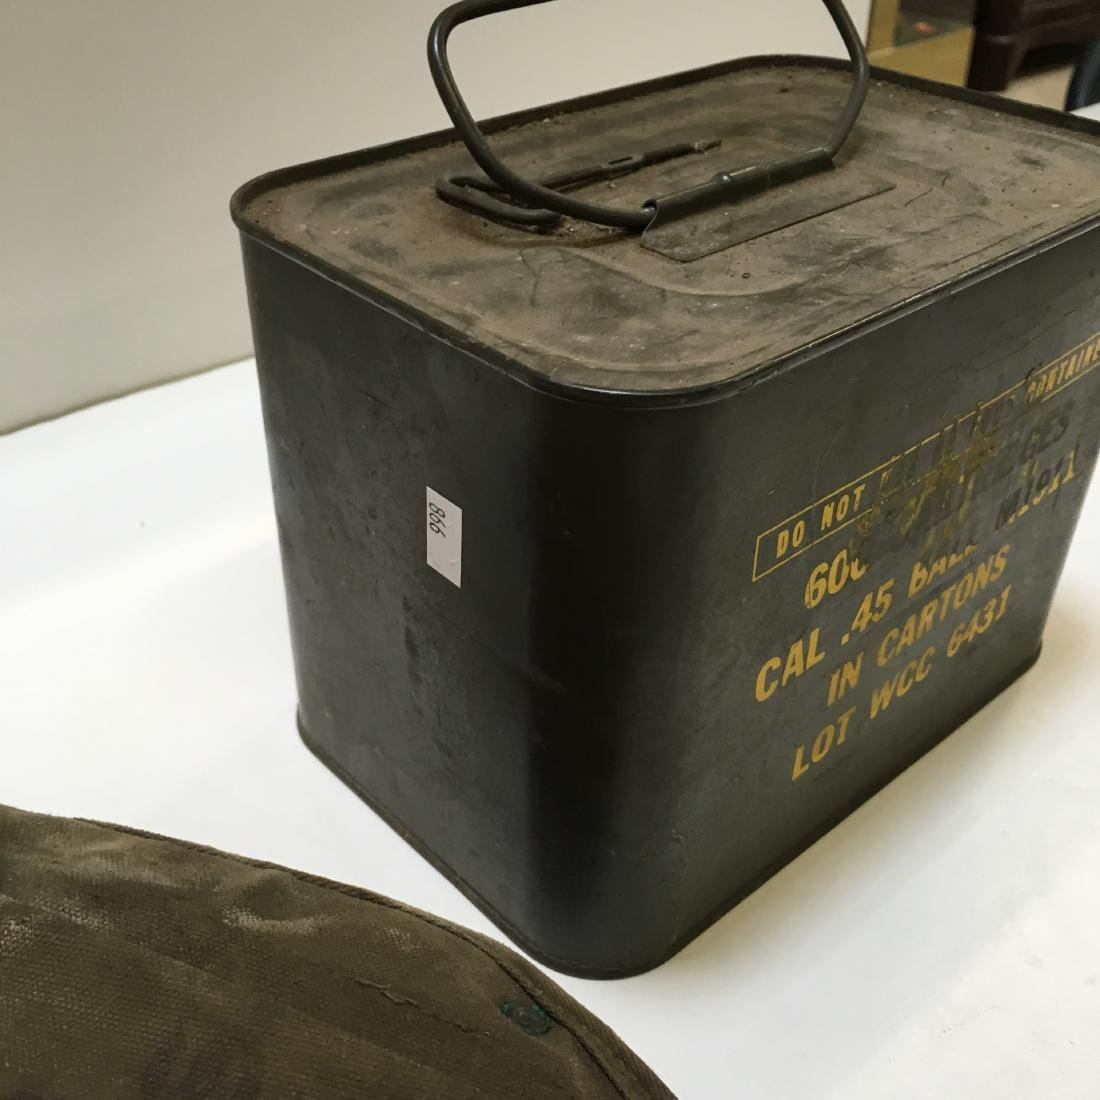 WWII ARMY SPADE & 600 RD WCC 45 BALL AMMO SPAM CAN - 4